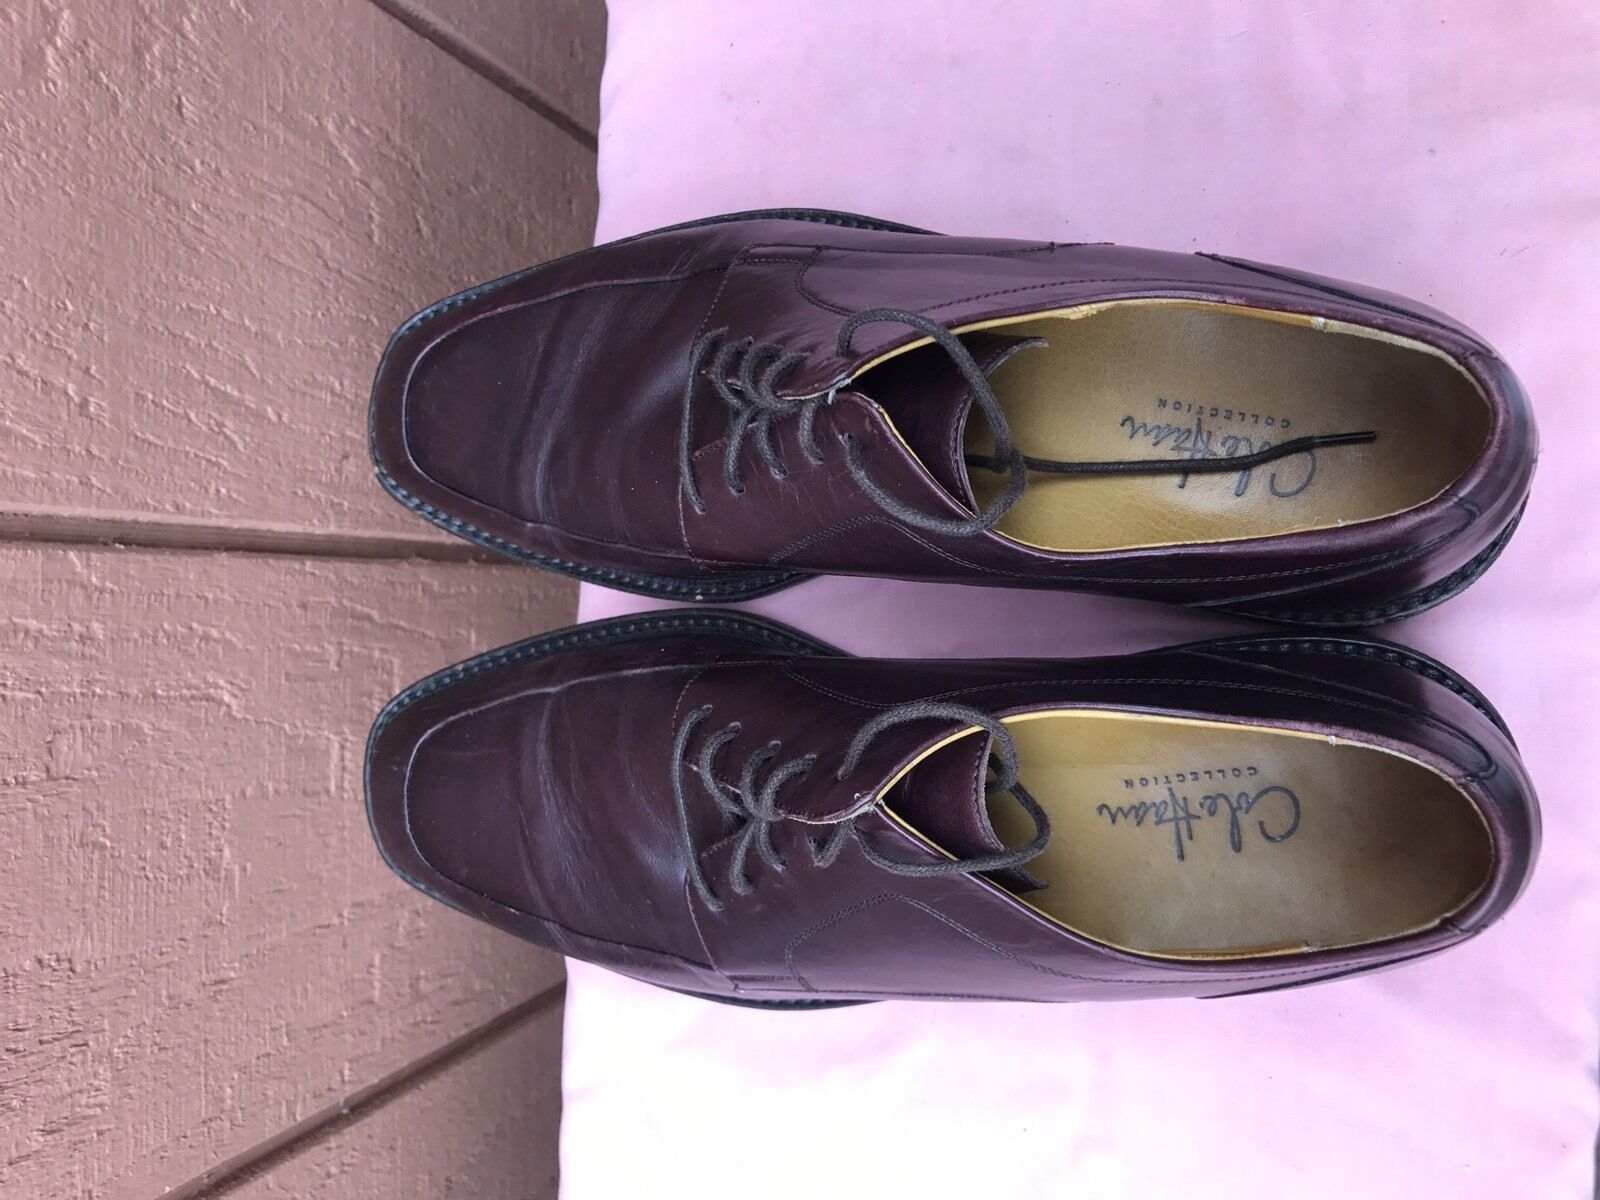 EUC COLE HAAN COLLECTION BURGUNDY DRESS LACE UP OXFORD US 9.5M